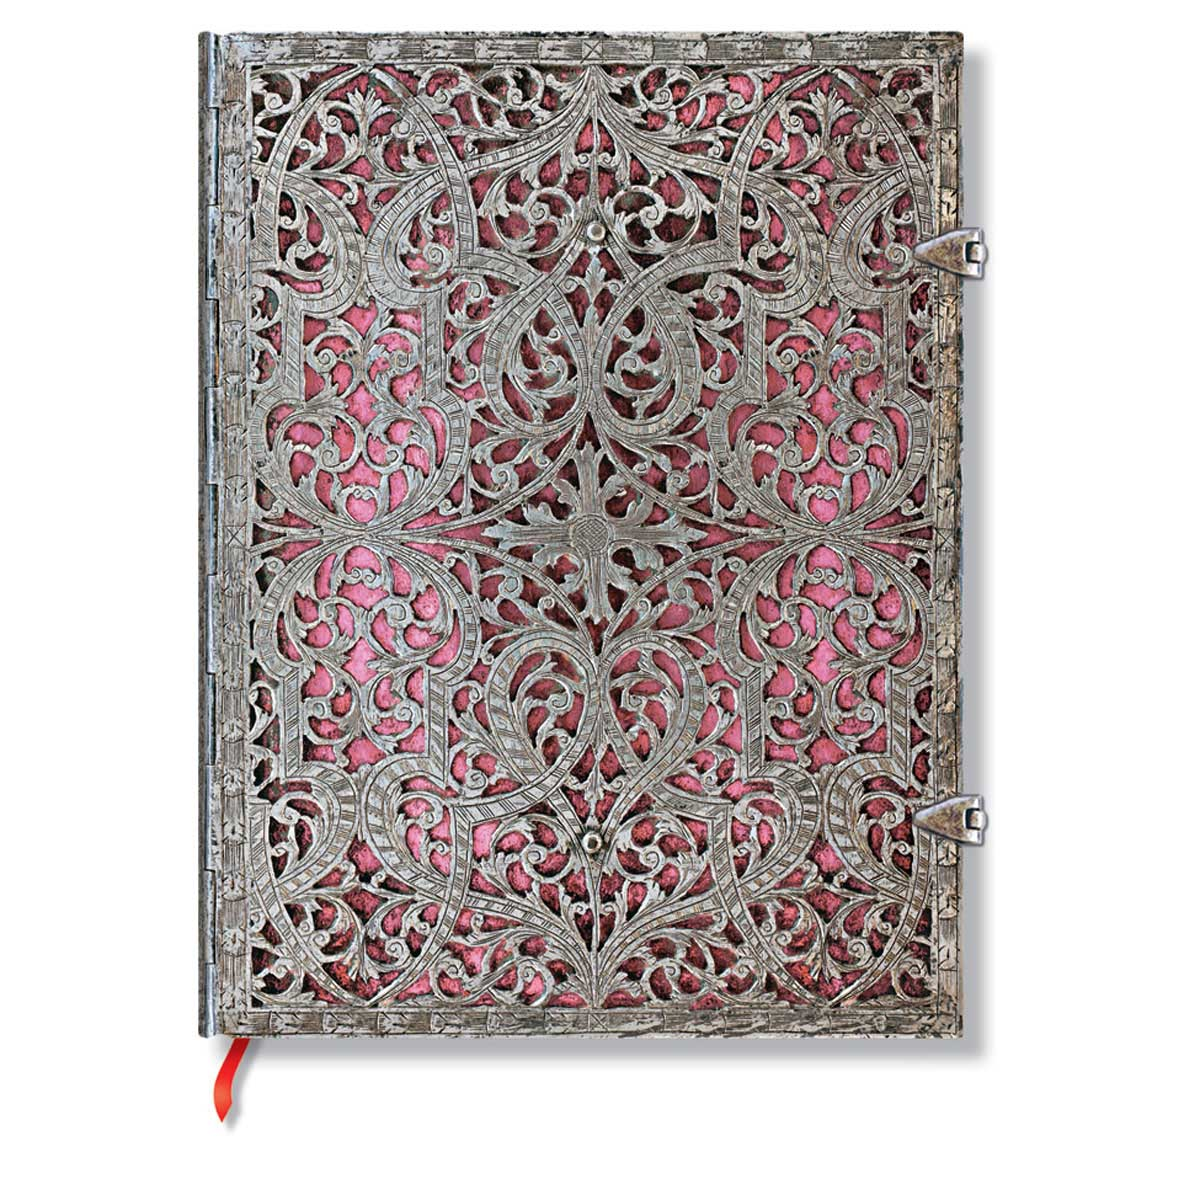 "Paperblanks Filigree Blush Pink 7"" x 9"" Lined Ultra Journal"